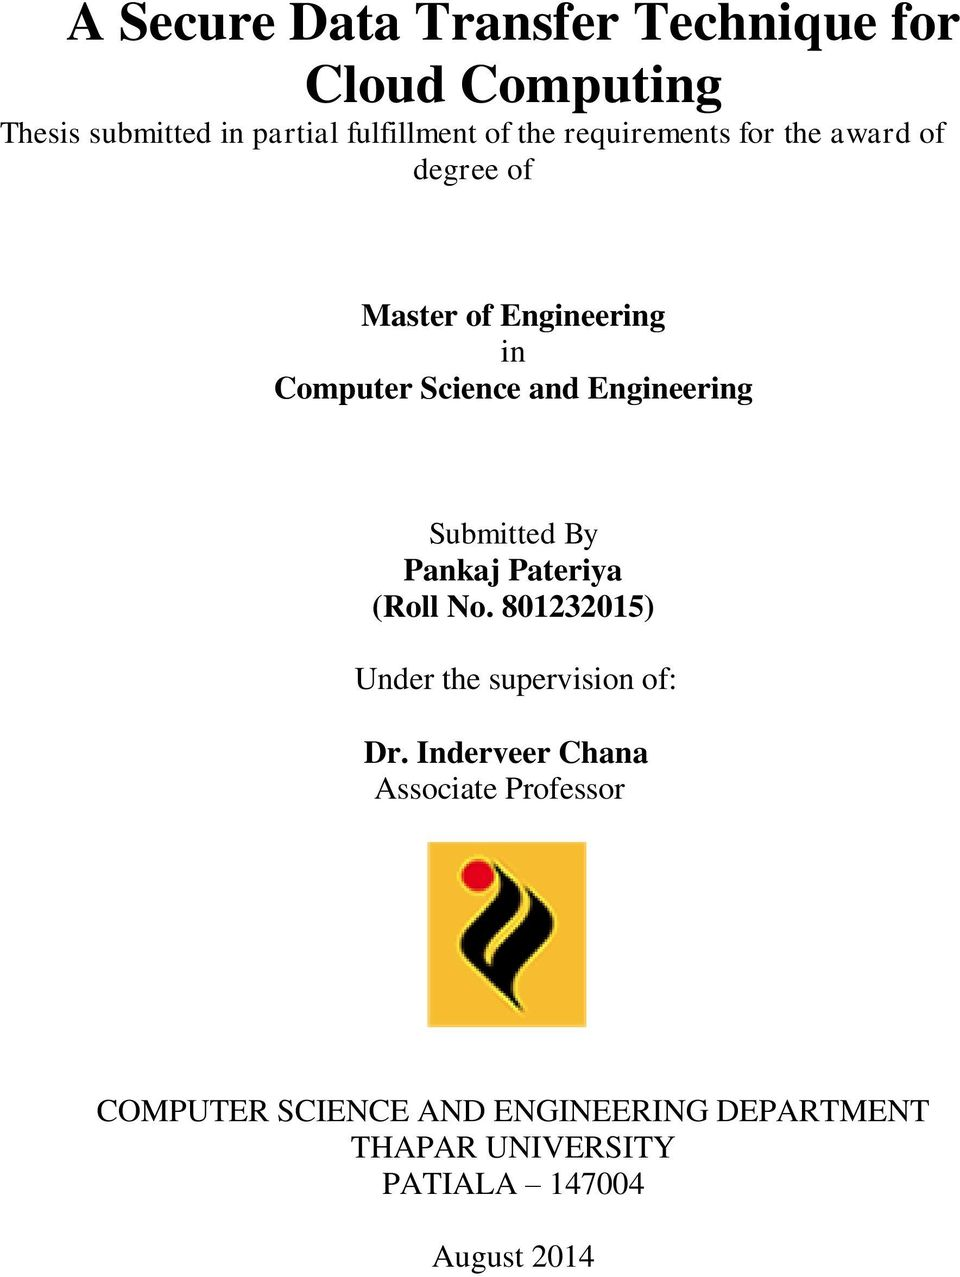 security cloud computing thesis Enhancing data security in cloud computing using rsa encryption and md5 algorithm sudhansu ranjan lenka1, biswaranjan nayak2 department of computer science and.